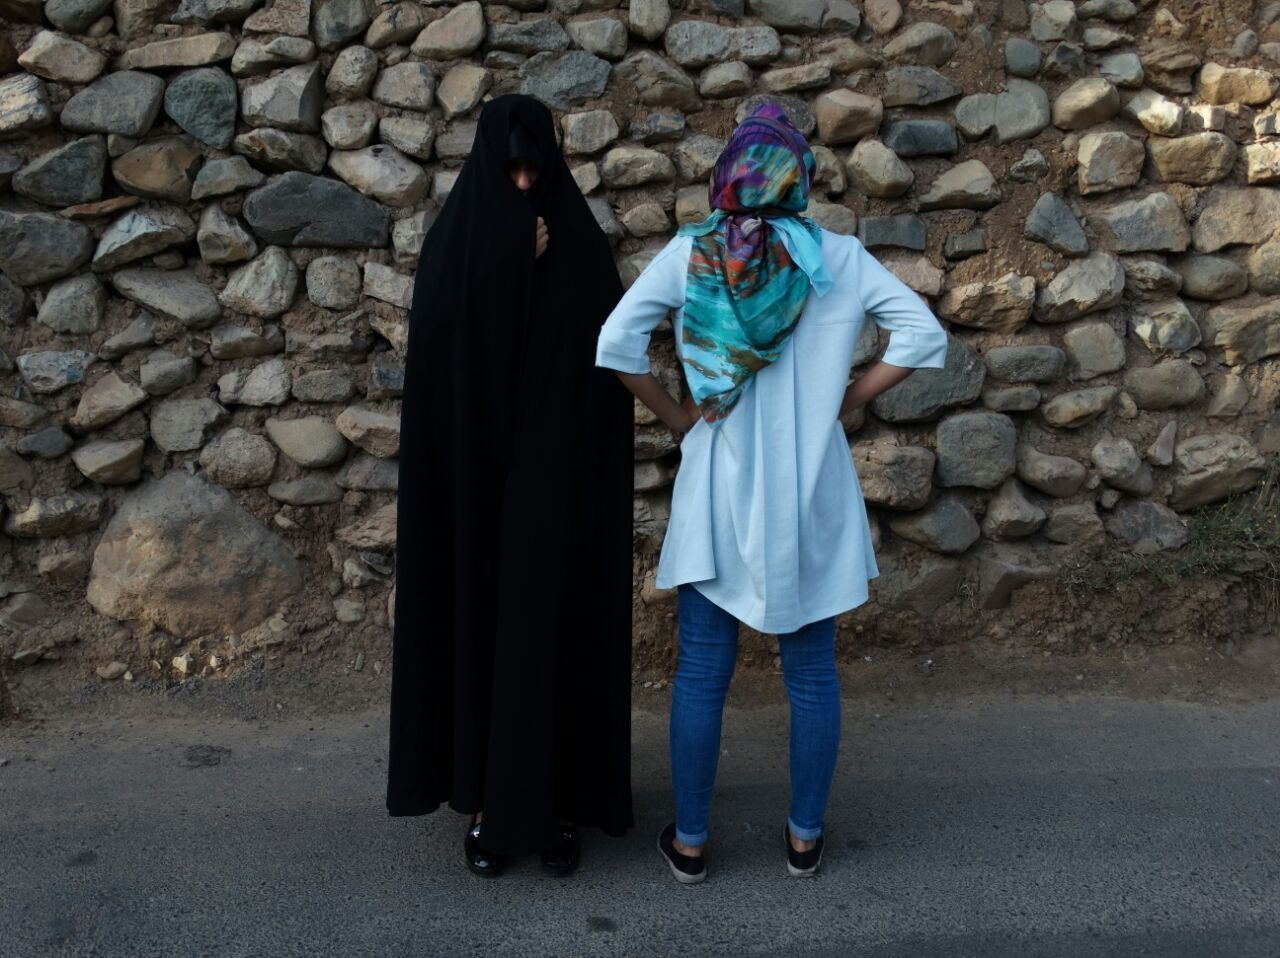 Today in the streets of Tehran and other large Iranian cities (Isfaghan, Shiraz, Tebriz) often women are seen wearing two types of hijabs: Chador (left) and Manto (loose colorful body cover) with Rosari (light headscarf with colorful flowers). First option is more conservative, second is modern and popular with the younger generation.